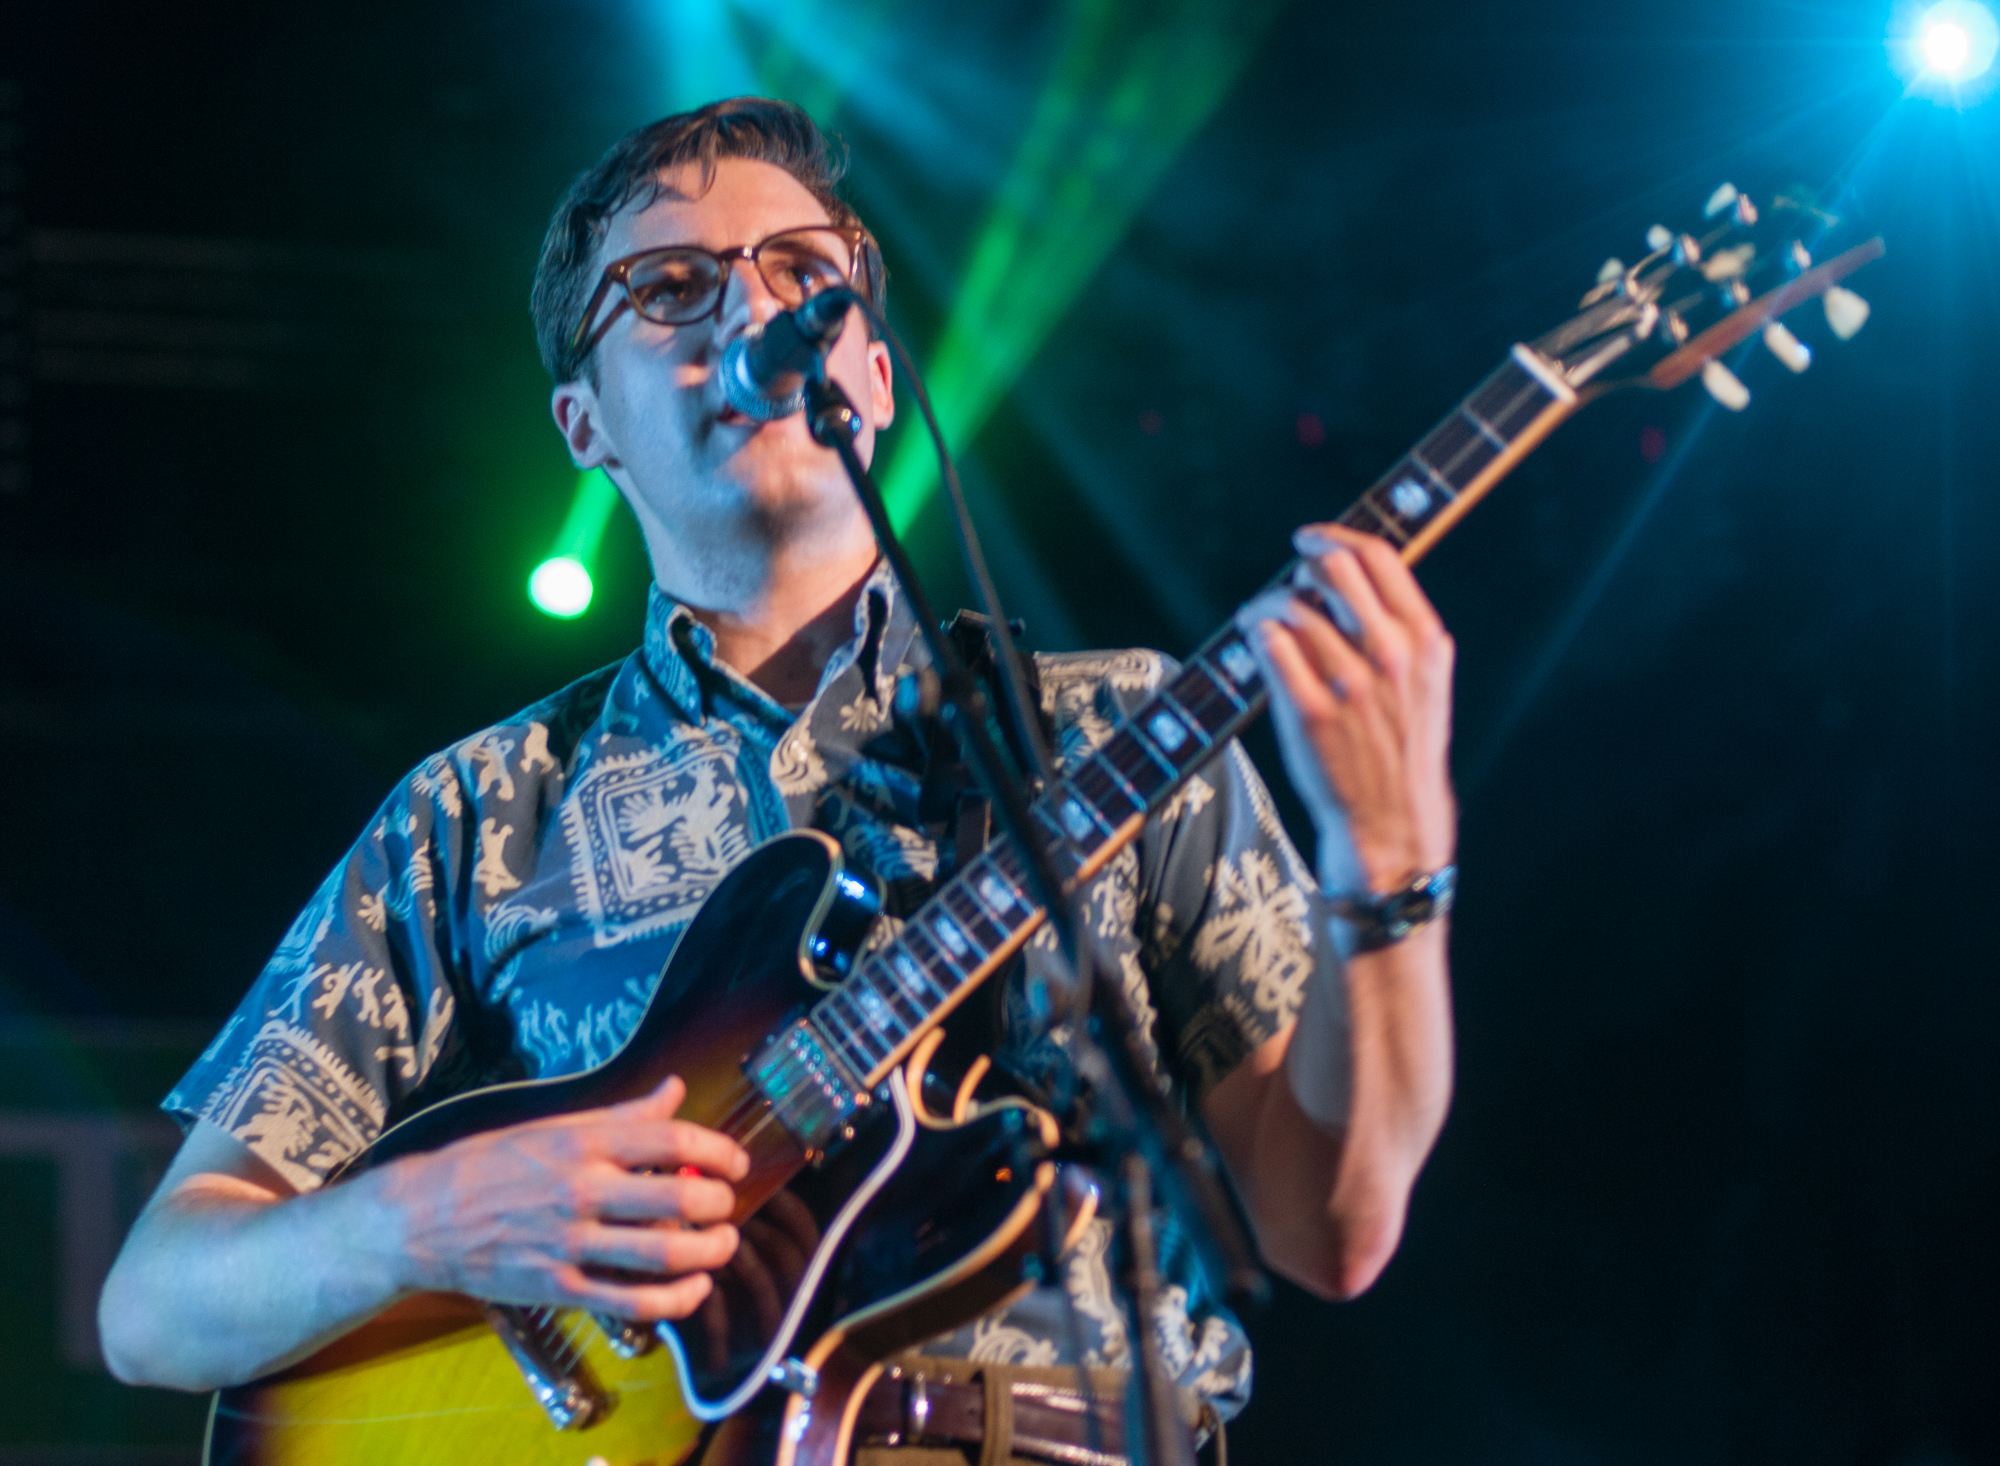 Nick waterhouse with the tarots at the montreal international jazz festival 2013